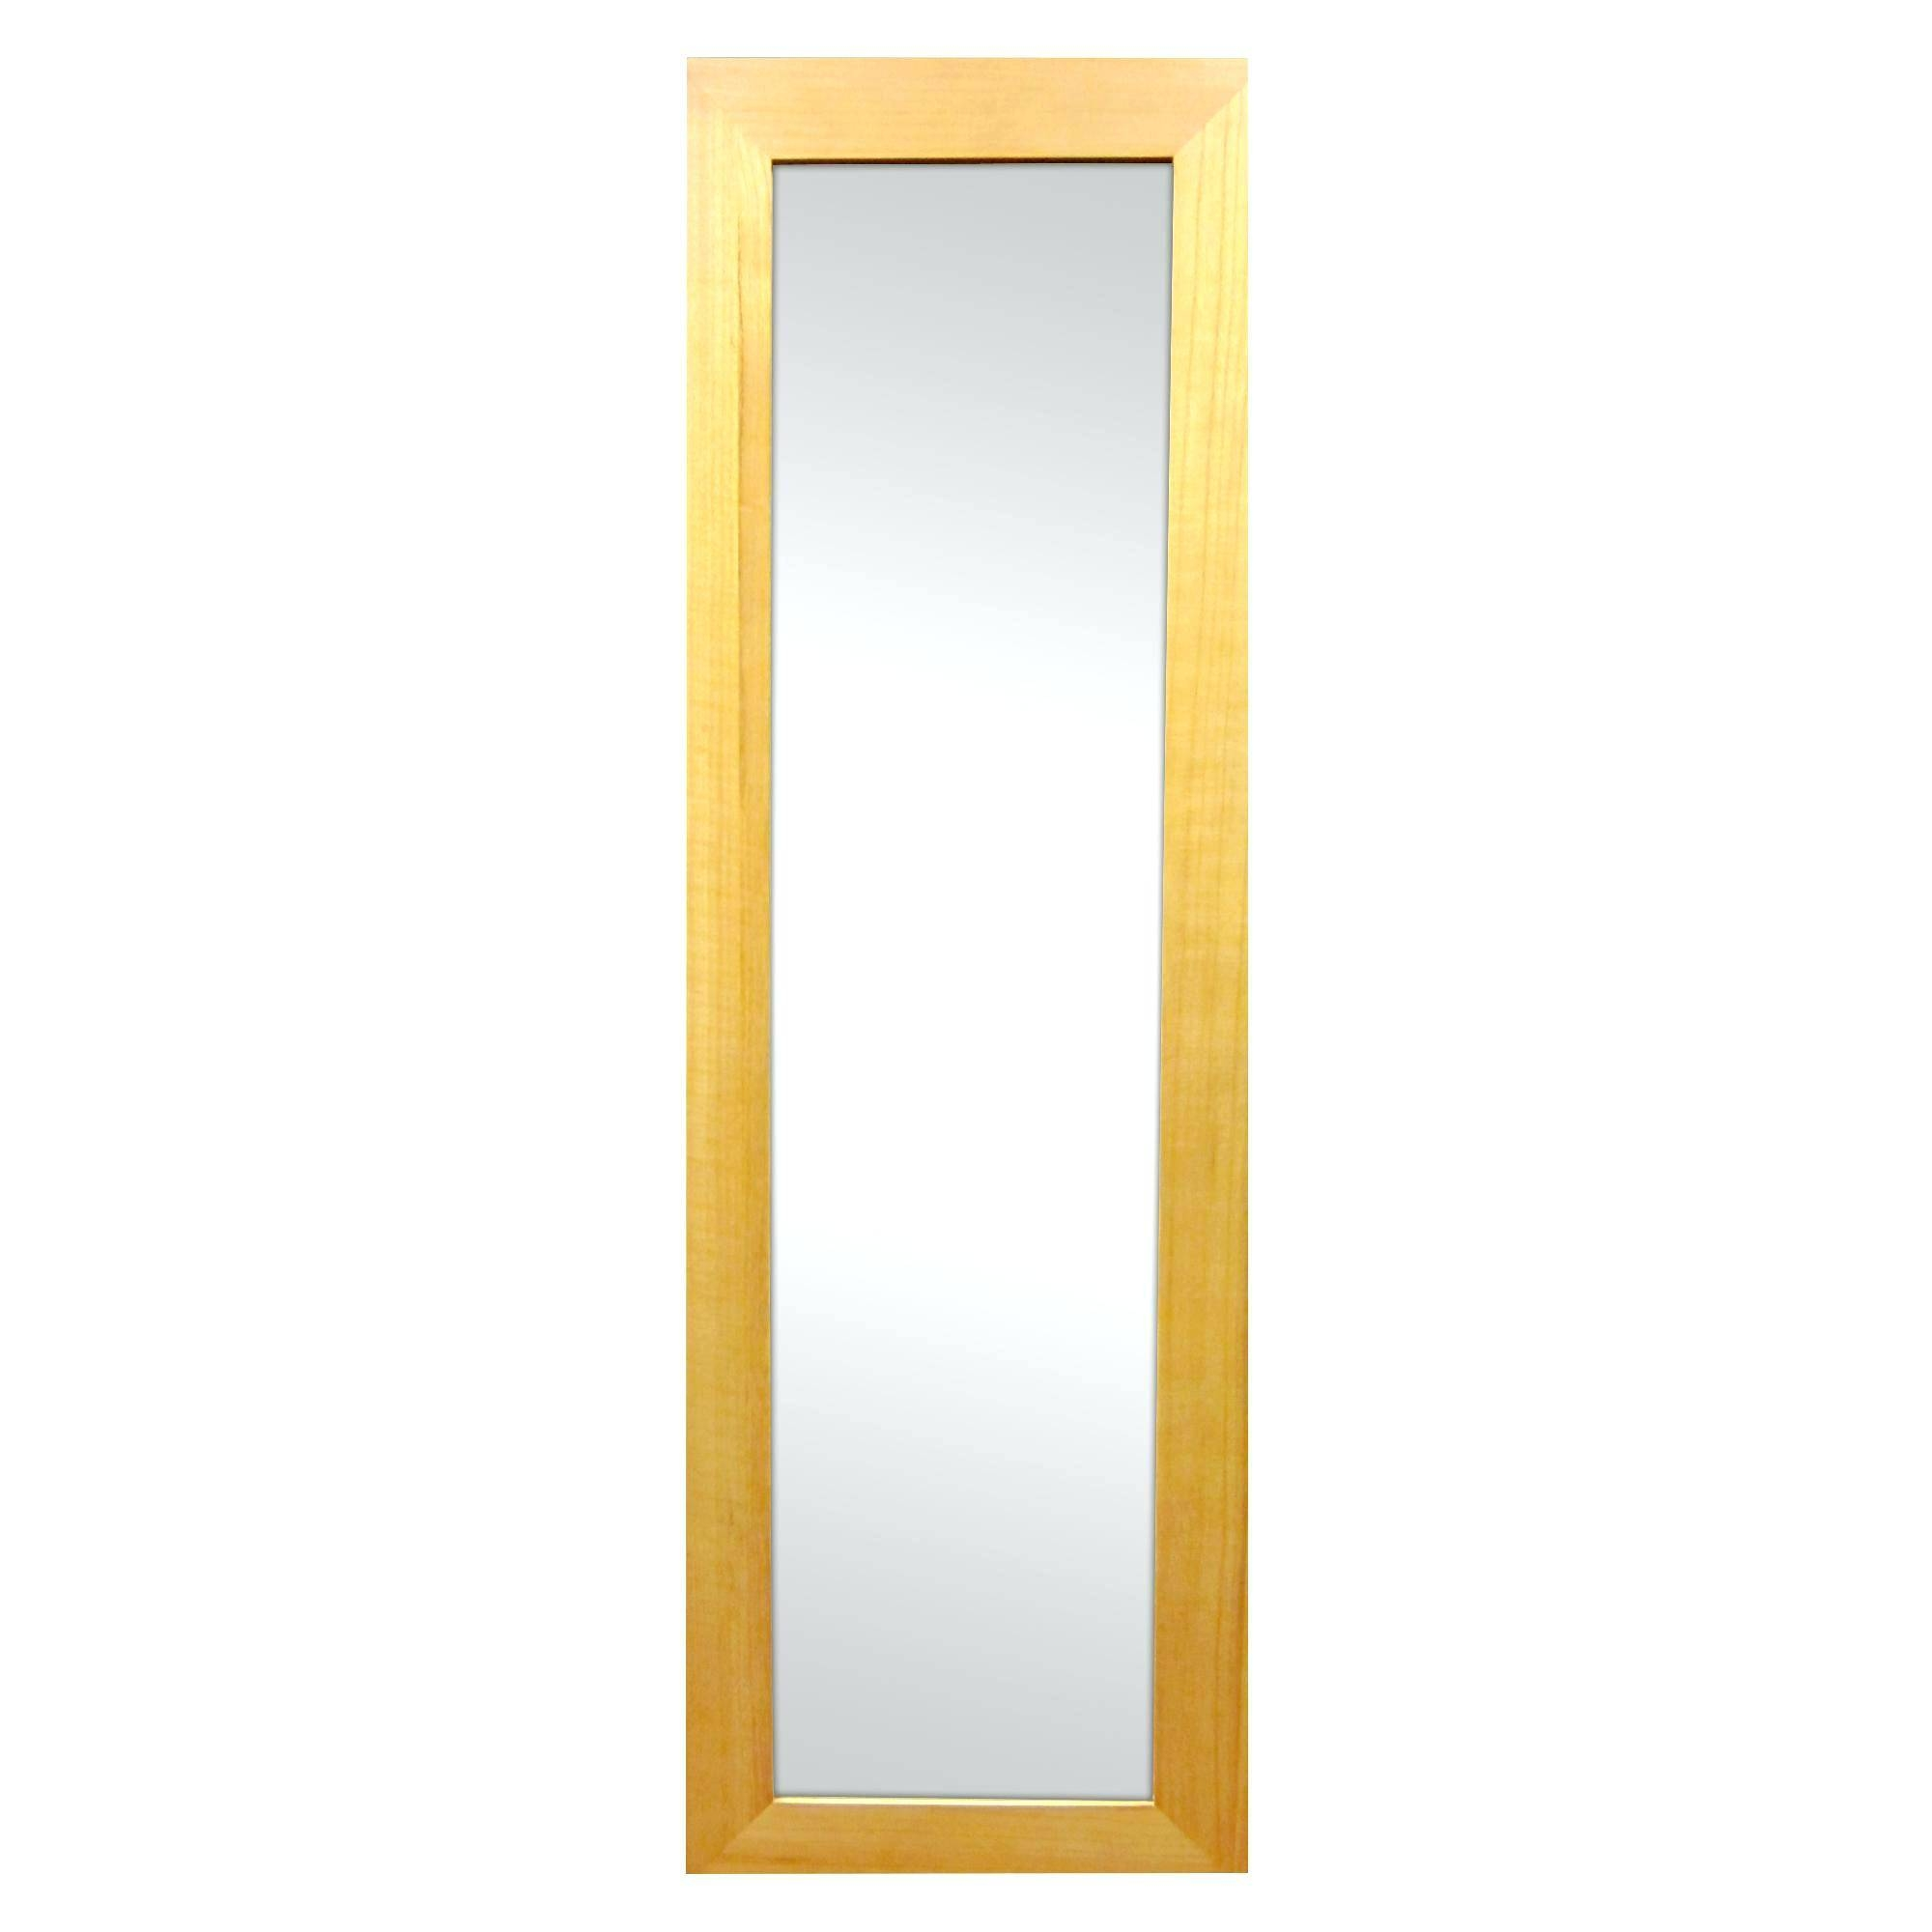 Wooden Full Length Mirroroak Framed Wall Mirror Oak – Shopwiz within Oak Framed Wall Mirrors (Image 25 of 25)